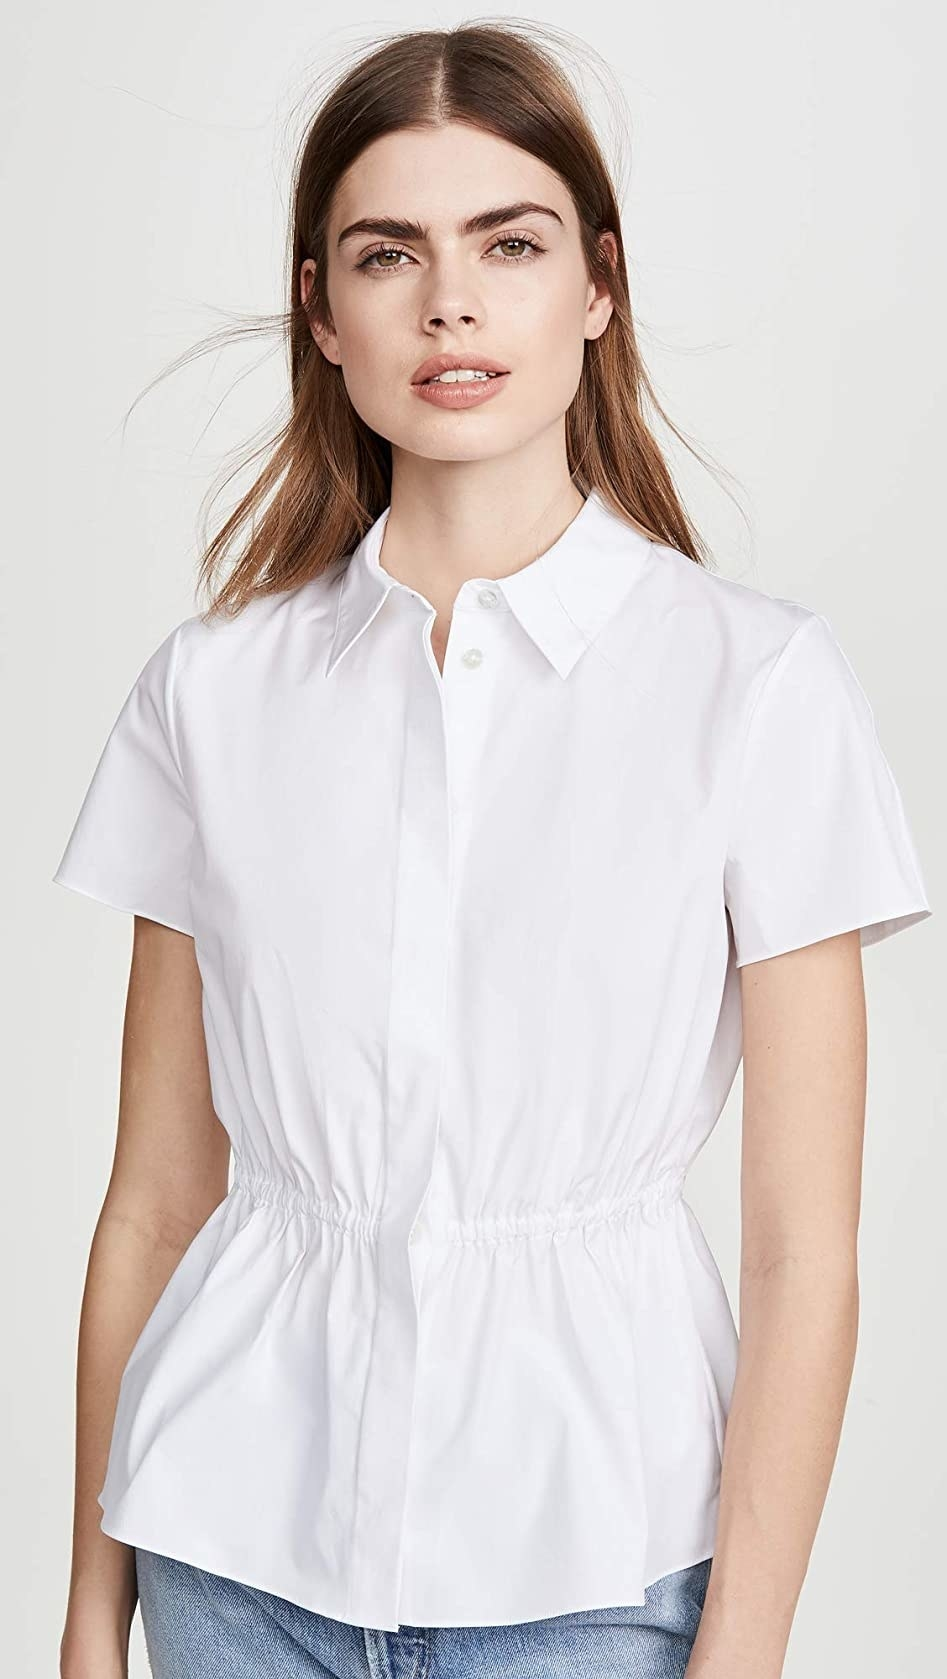 The plain white blouse with a cinched middle